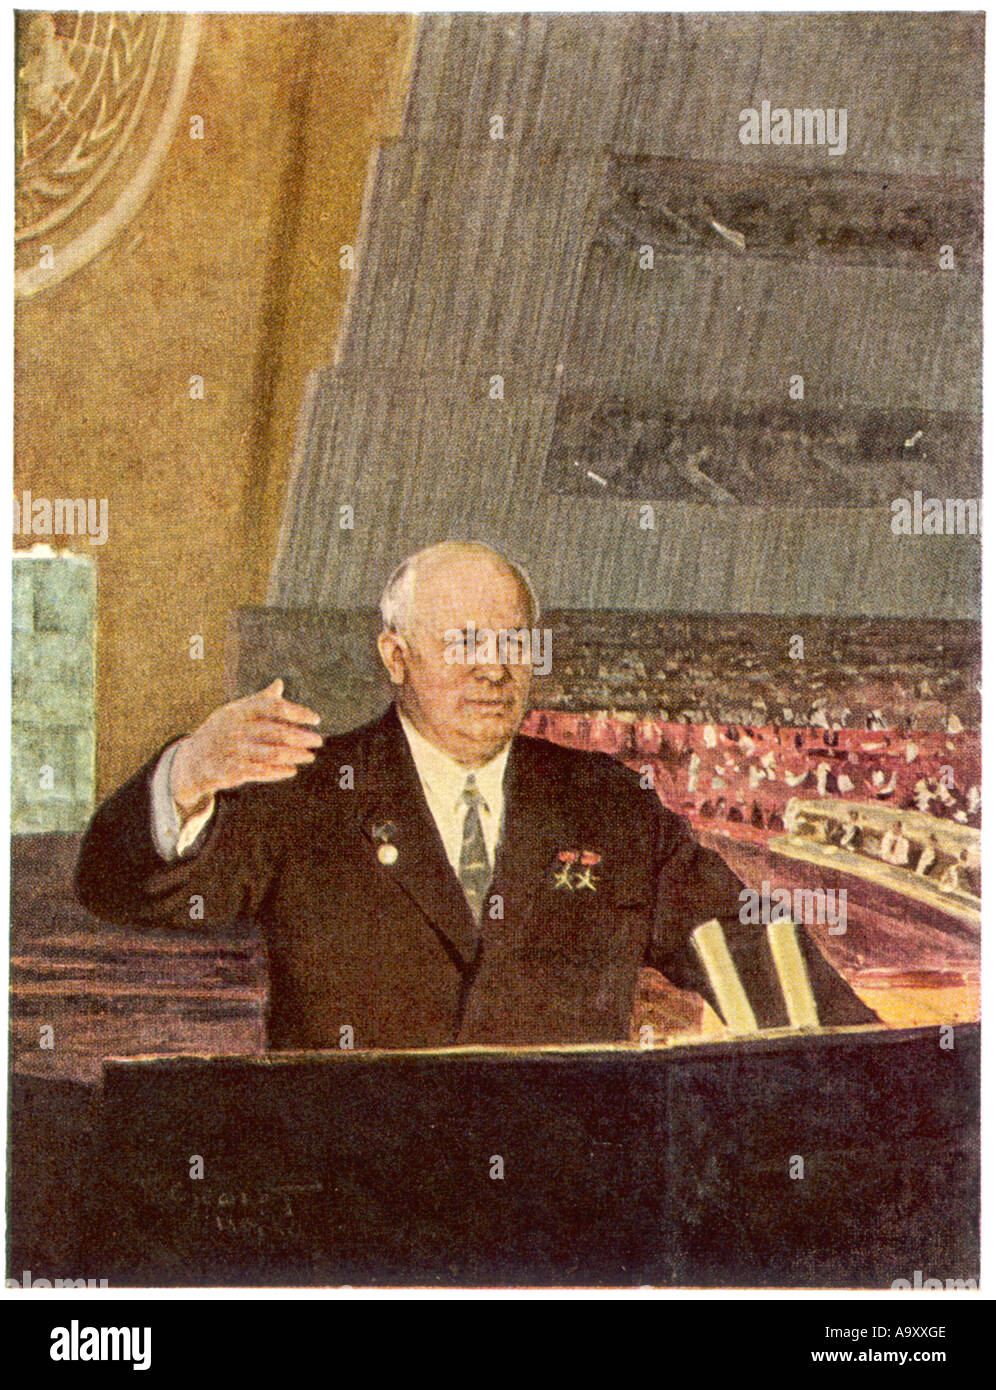 Khrushchev Speaking At The Un - Stock Image